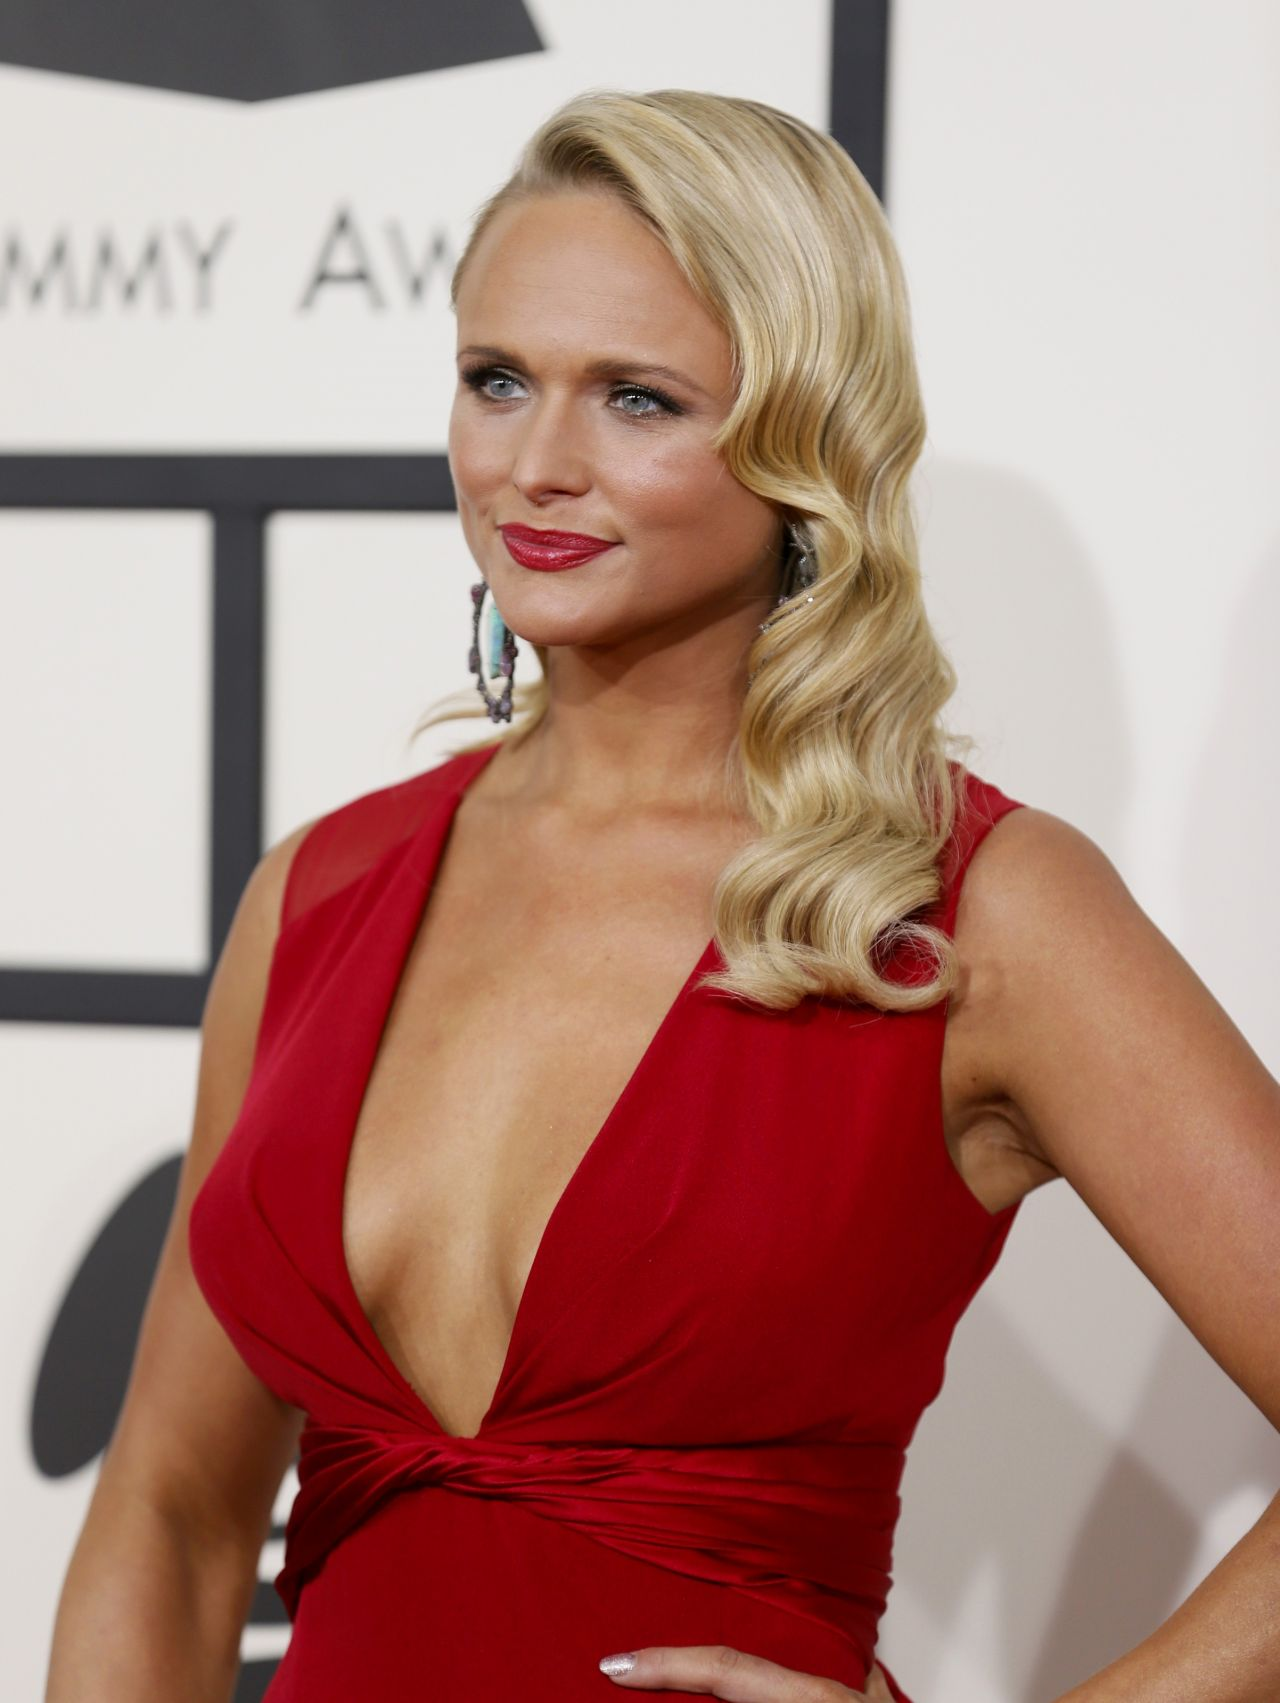 Miranda Lambert - 56th Annual Grammy Awards – January 2014